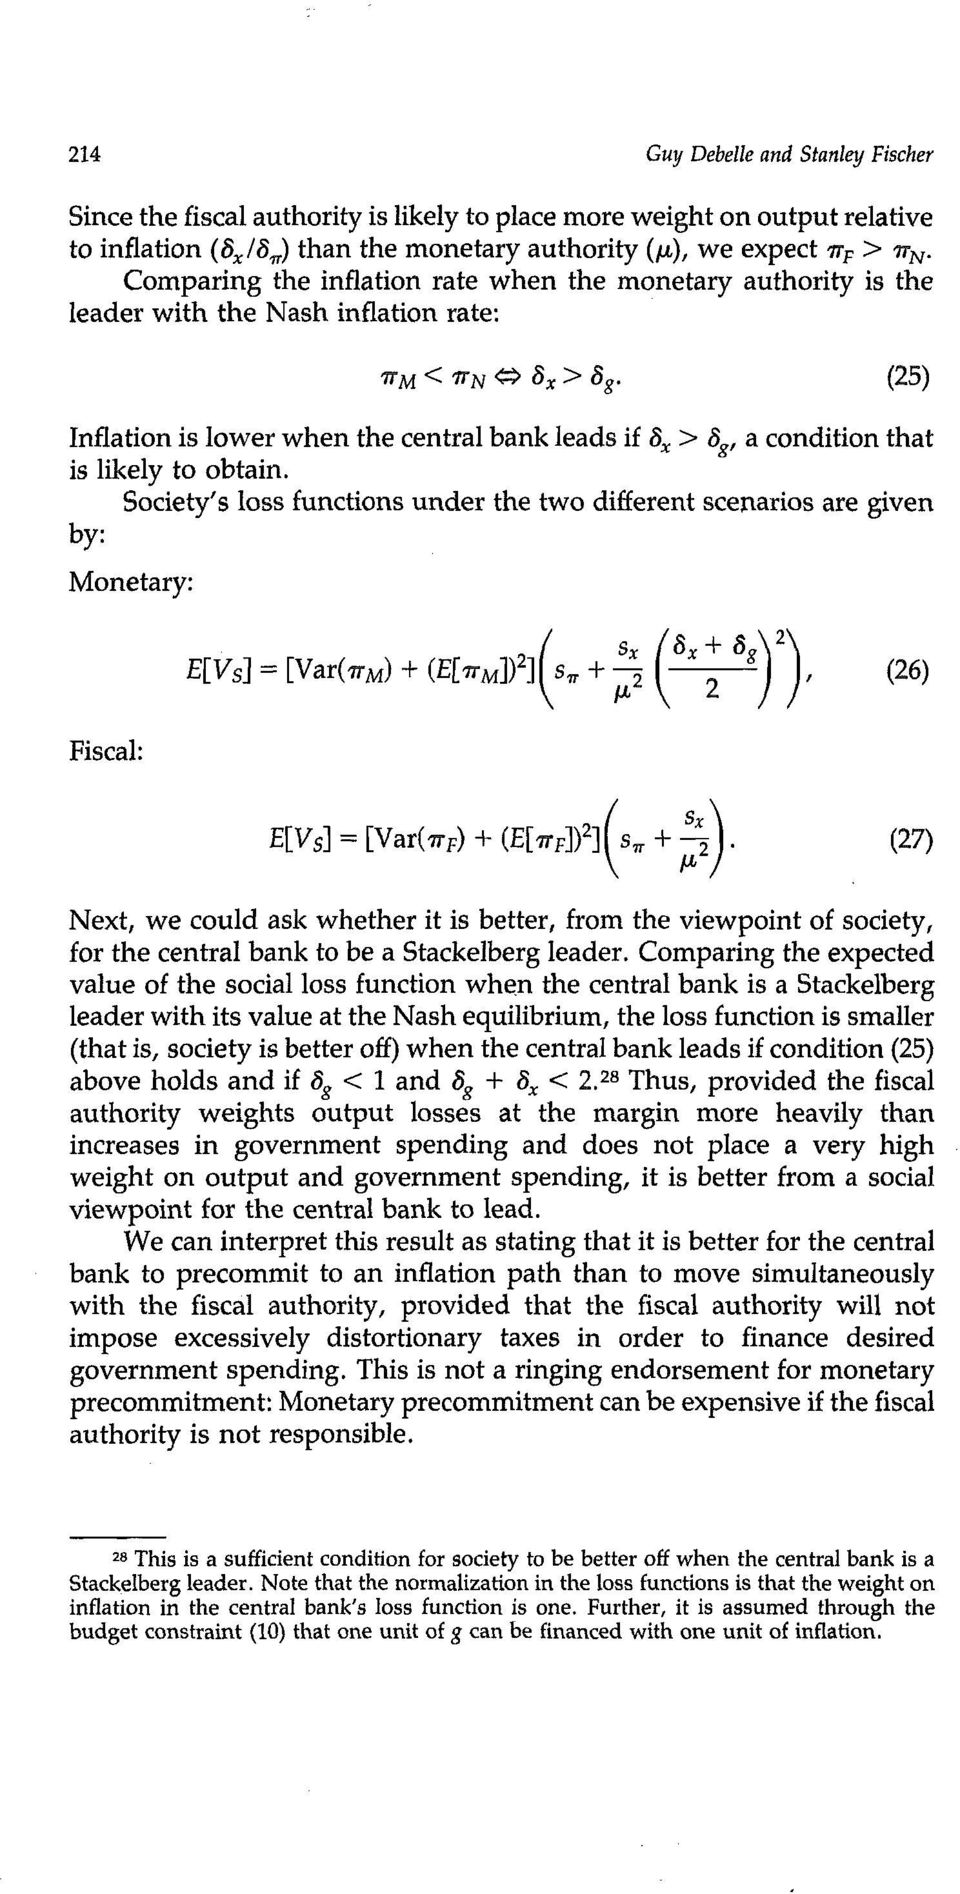 Society s loss functions under the two different scenarios are given by: Monetary: (25) Fiscal: E[Vs] = [Var(~r~) + (E[vr~]) 2] s~ + ~-~, (26) E[Vs] = [Vat(Try) + (E[~r~]) 2] s~ +.